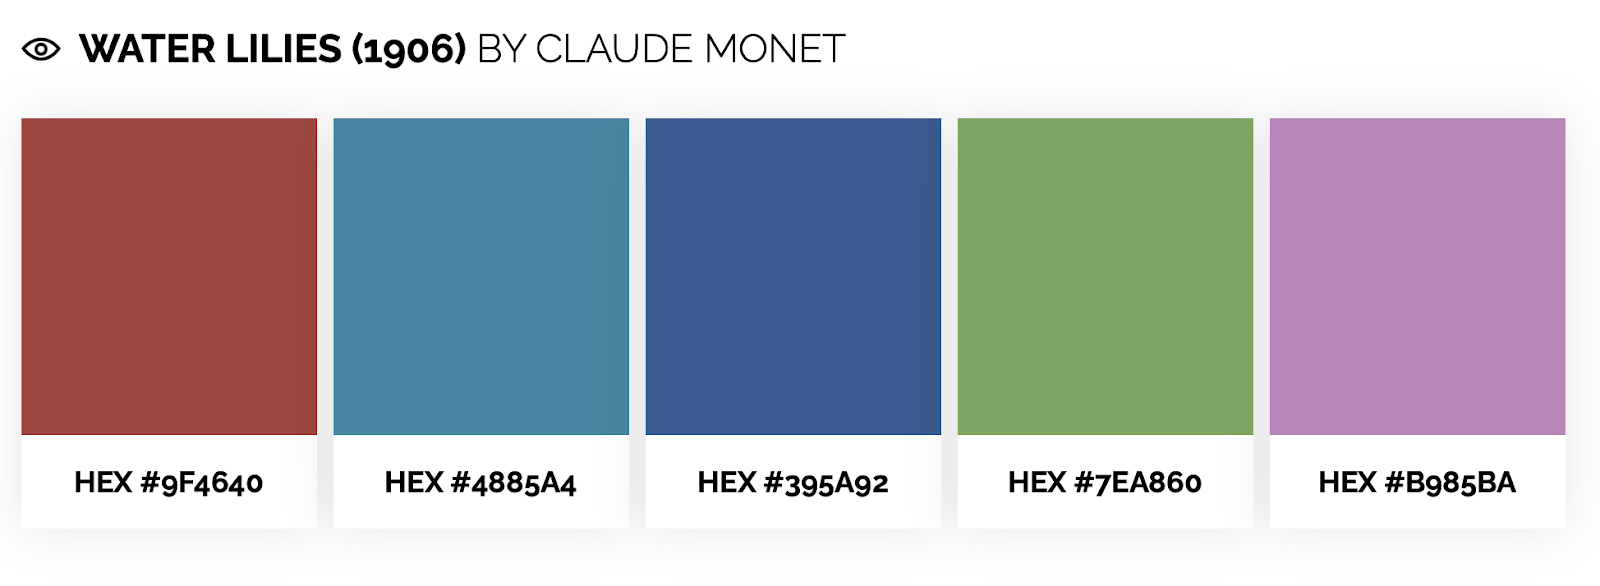 cool color palette inspired by claude monet